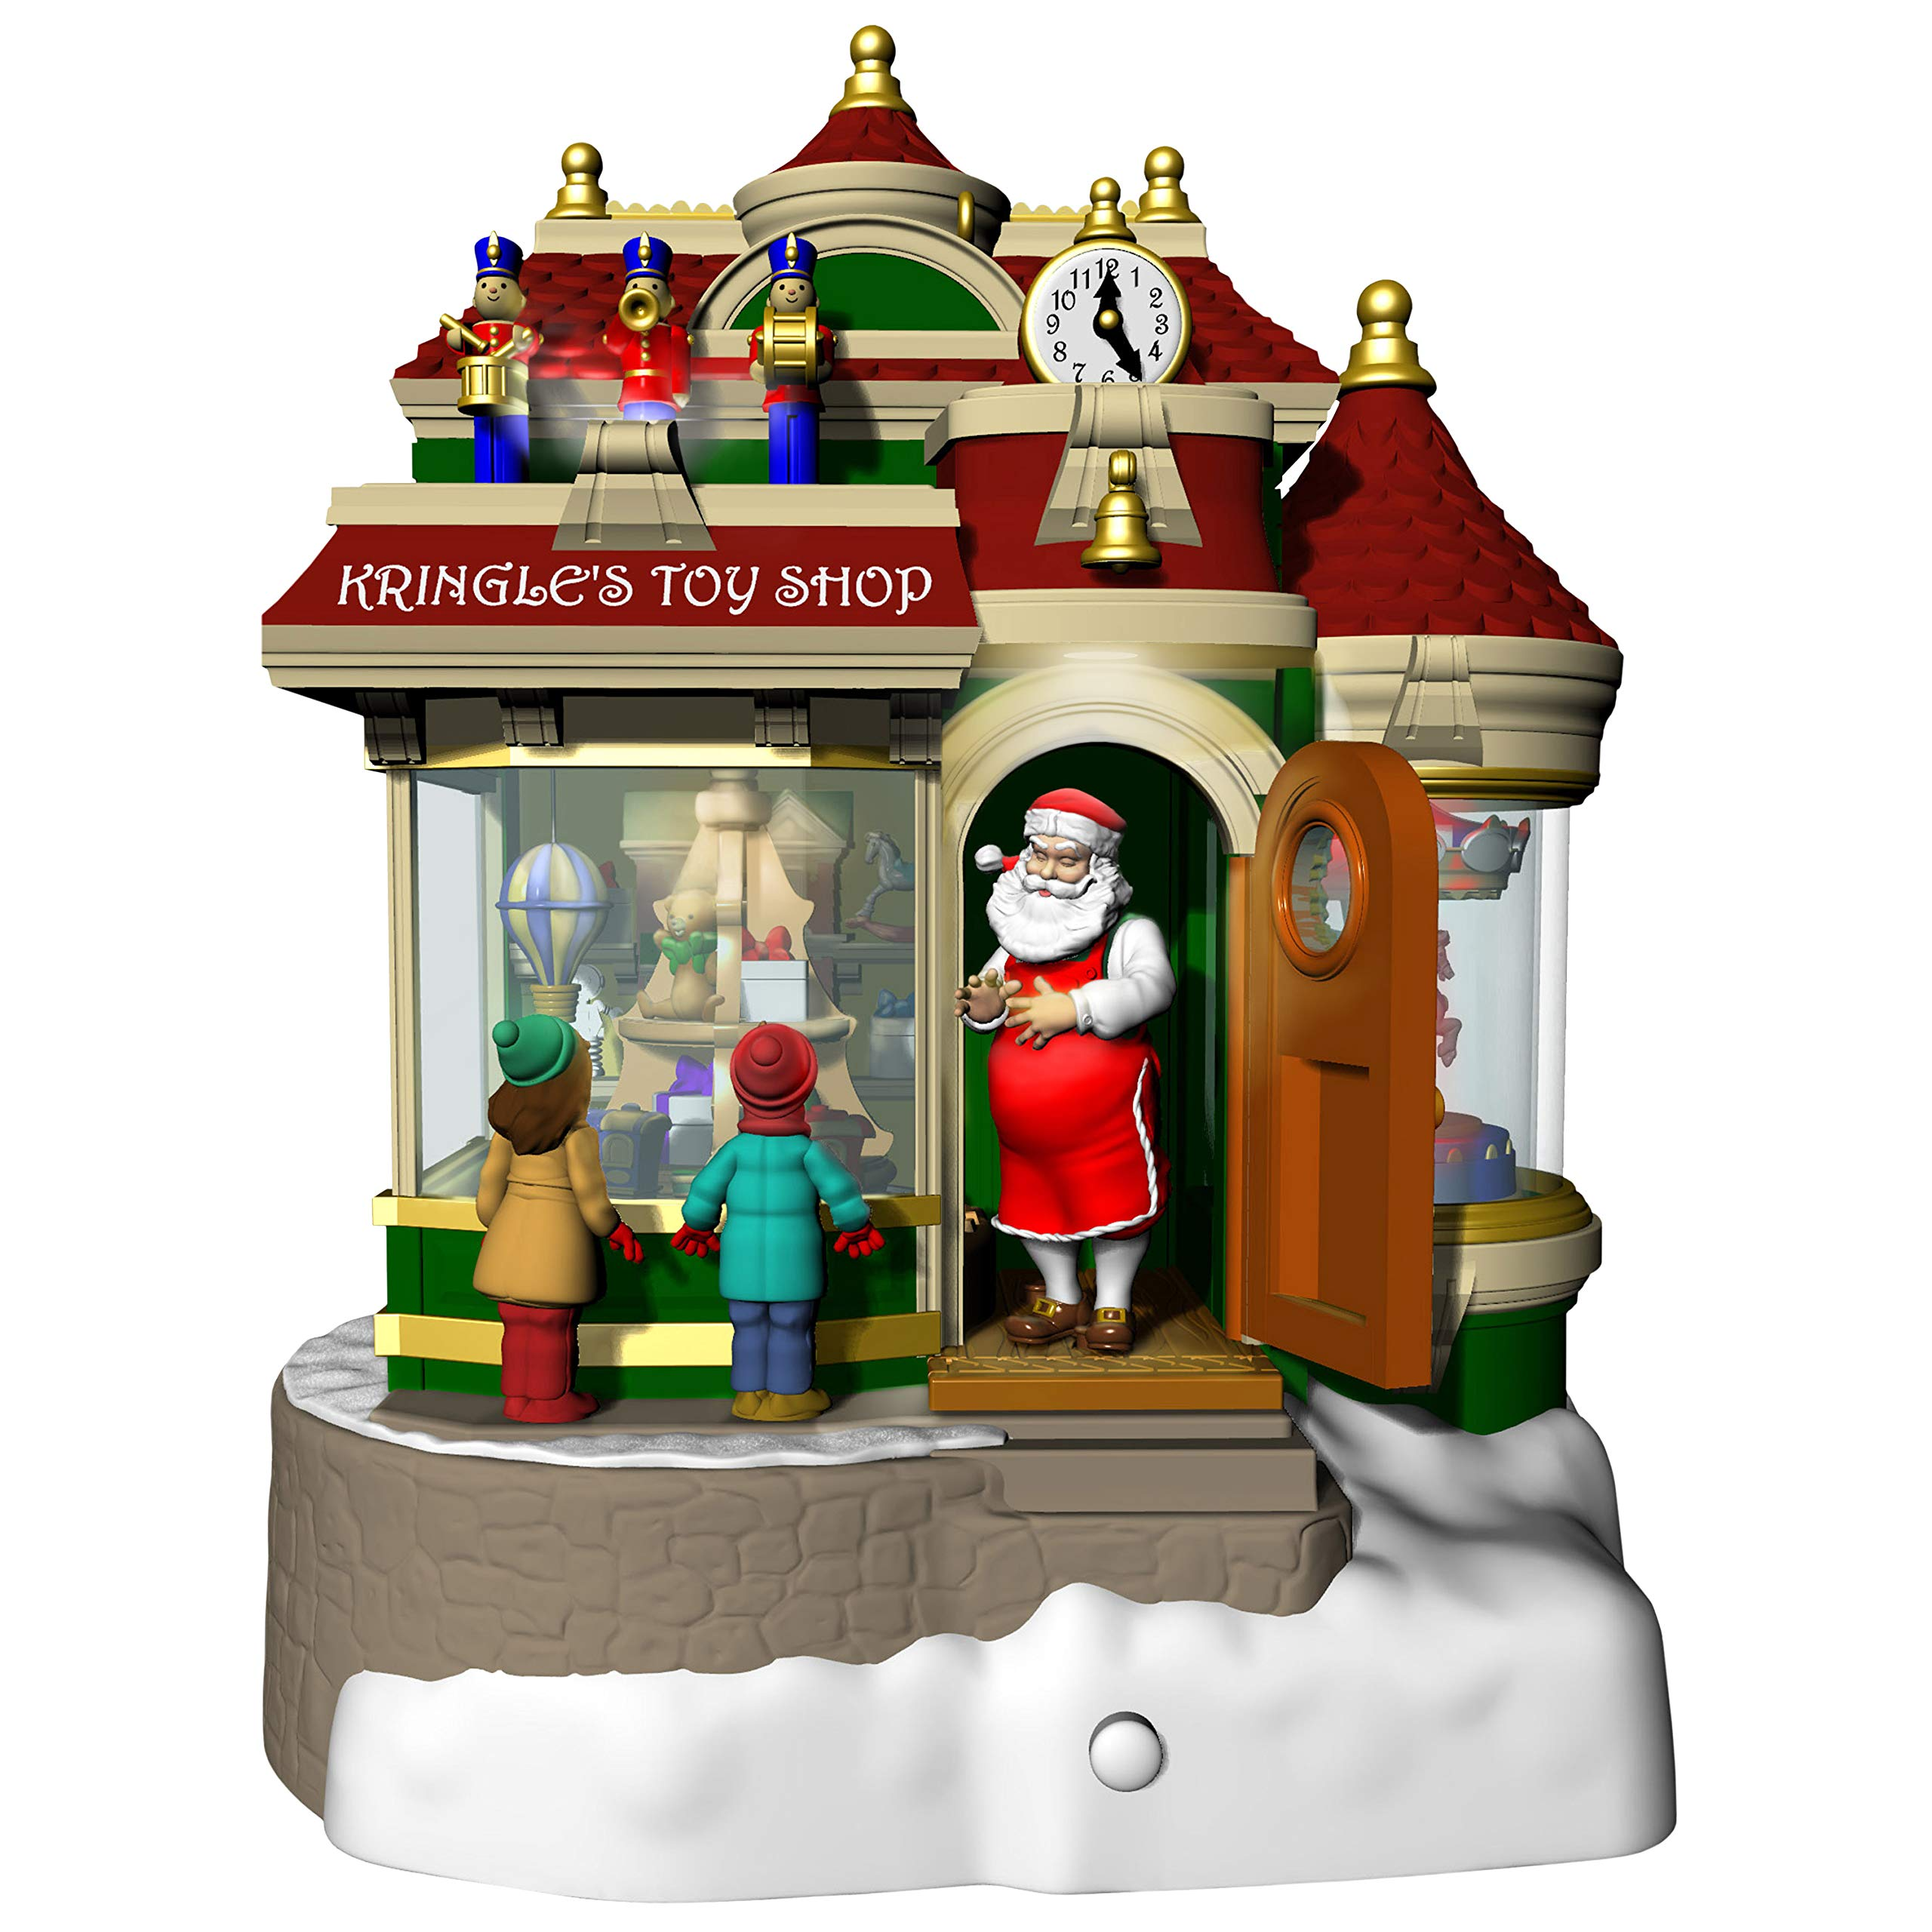 Hallmark Keepsake Christmas Ornament 2019 Year Dated Kringle's Toy Shop with Light, Sound and Motion, by Hallmark Keepsake